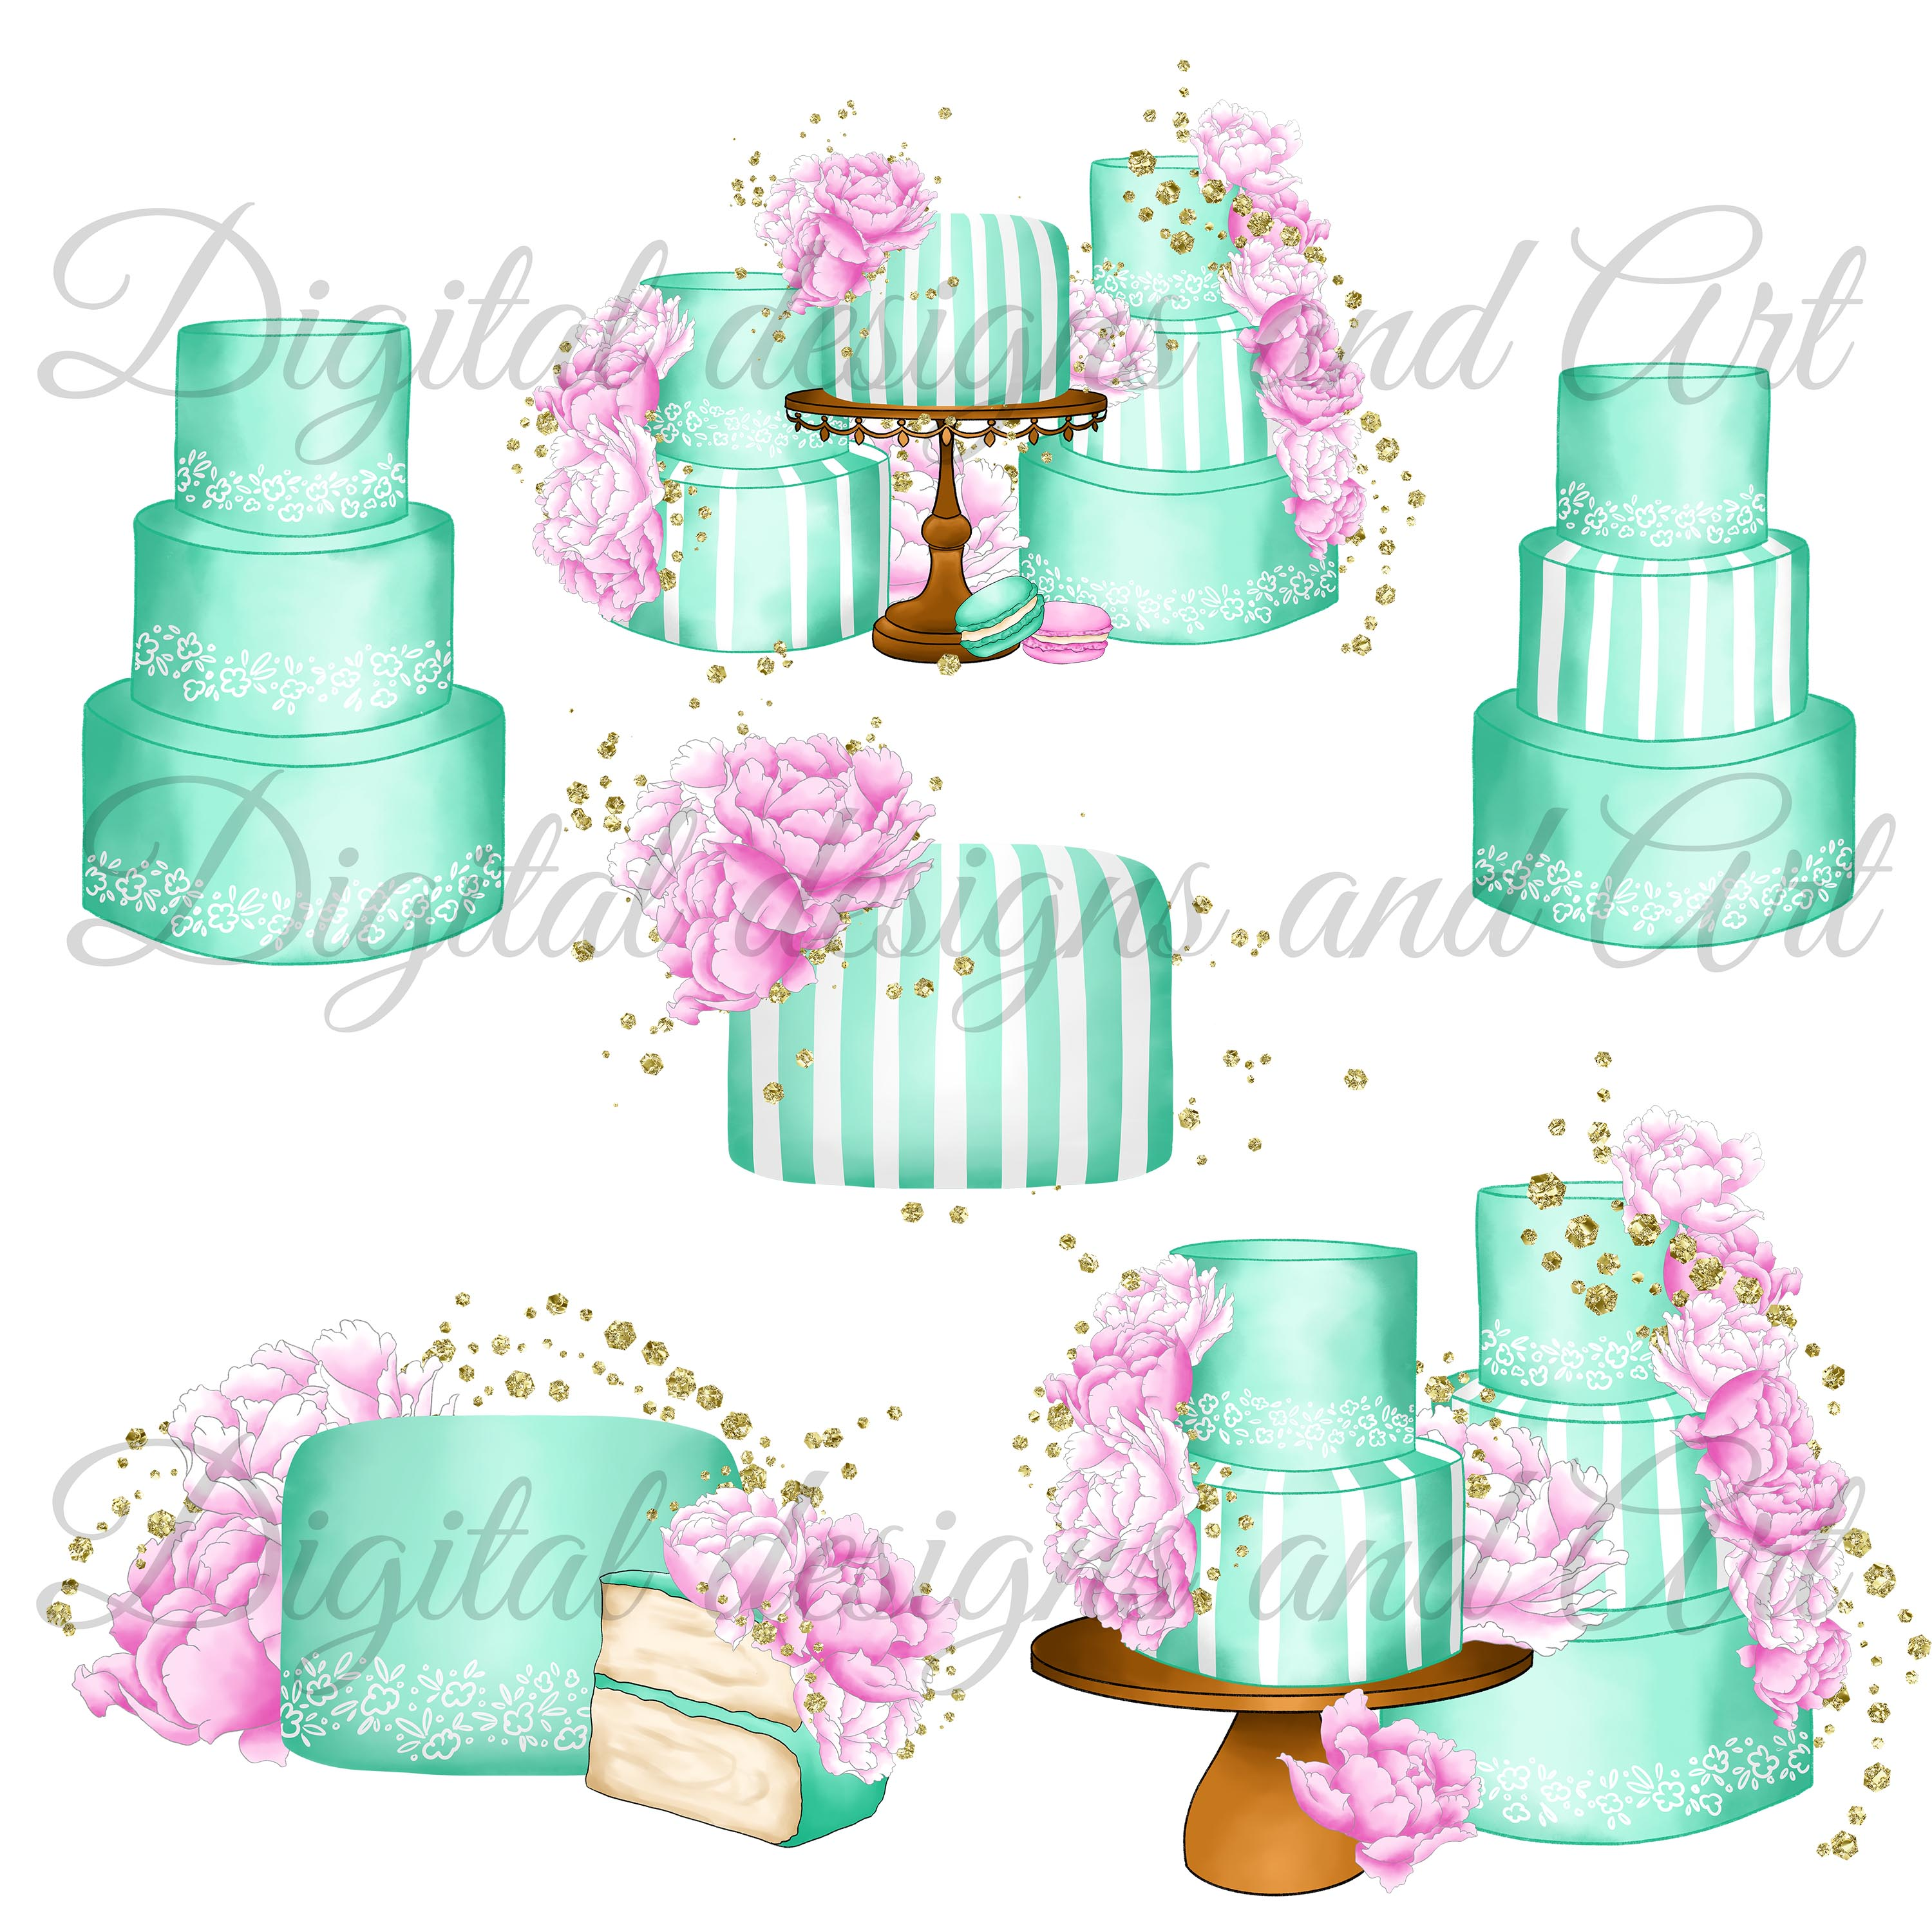 Fashion cakes clipart example image 3